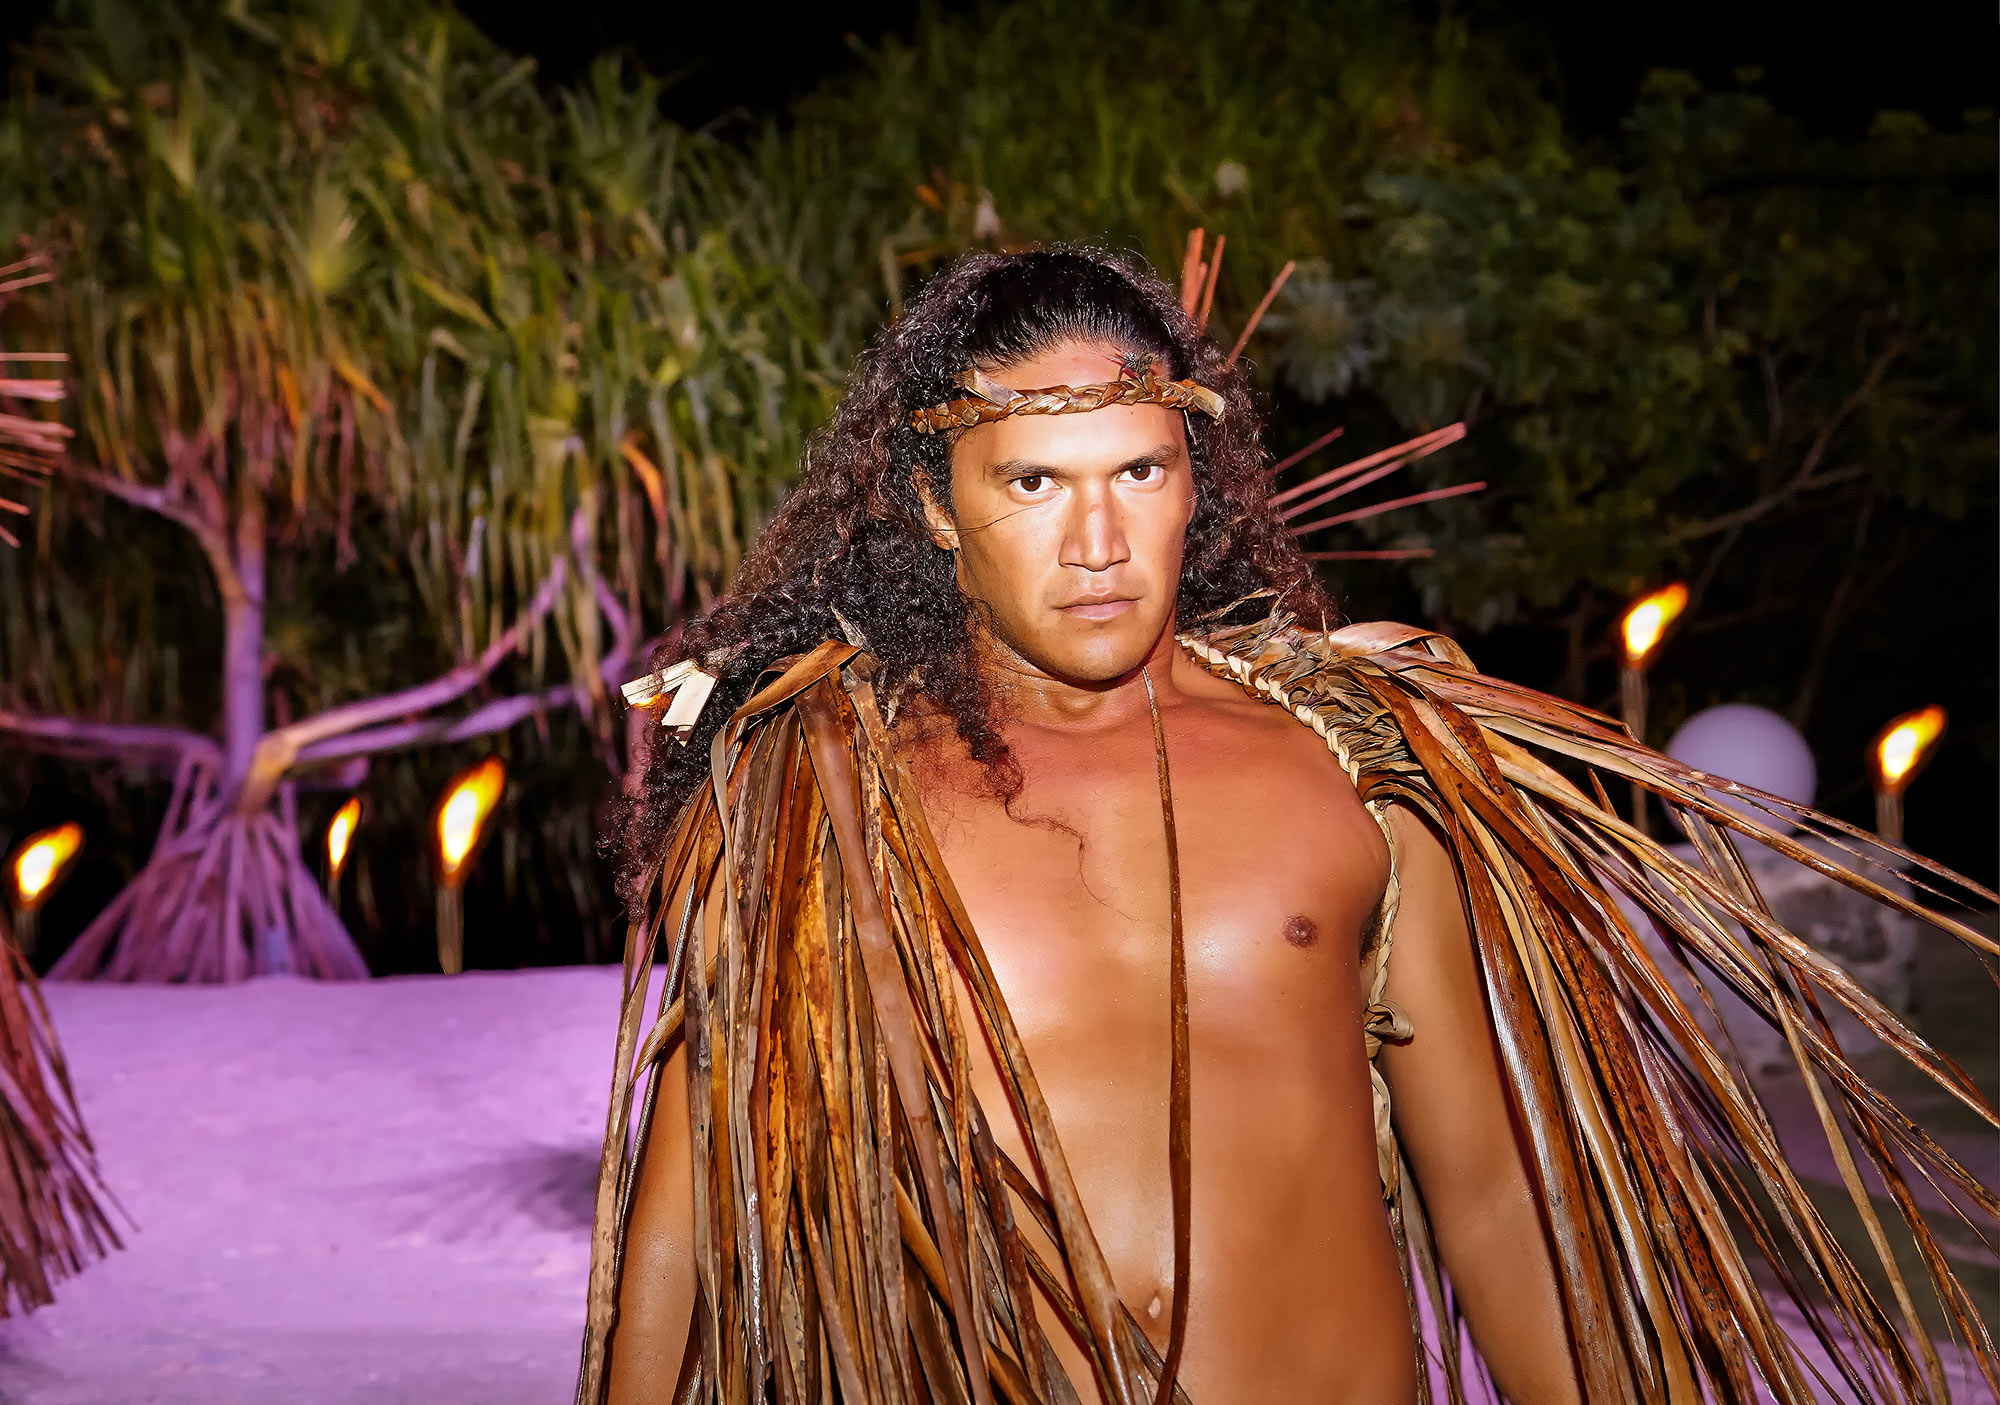 Tahiti-Travel-Photography-Warrior-With-Tiki-Torches